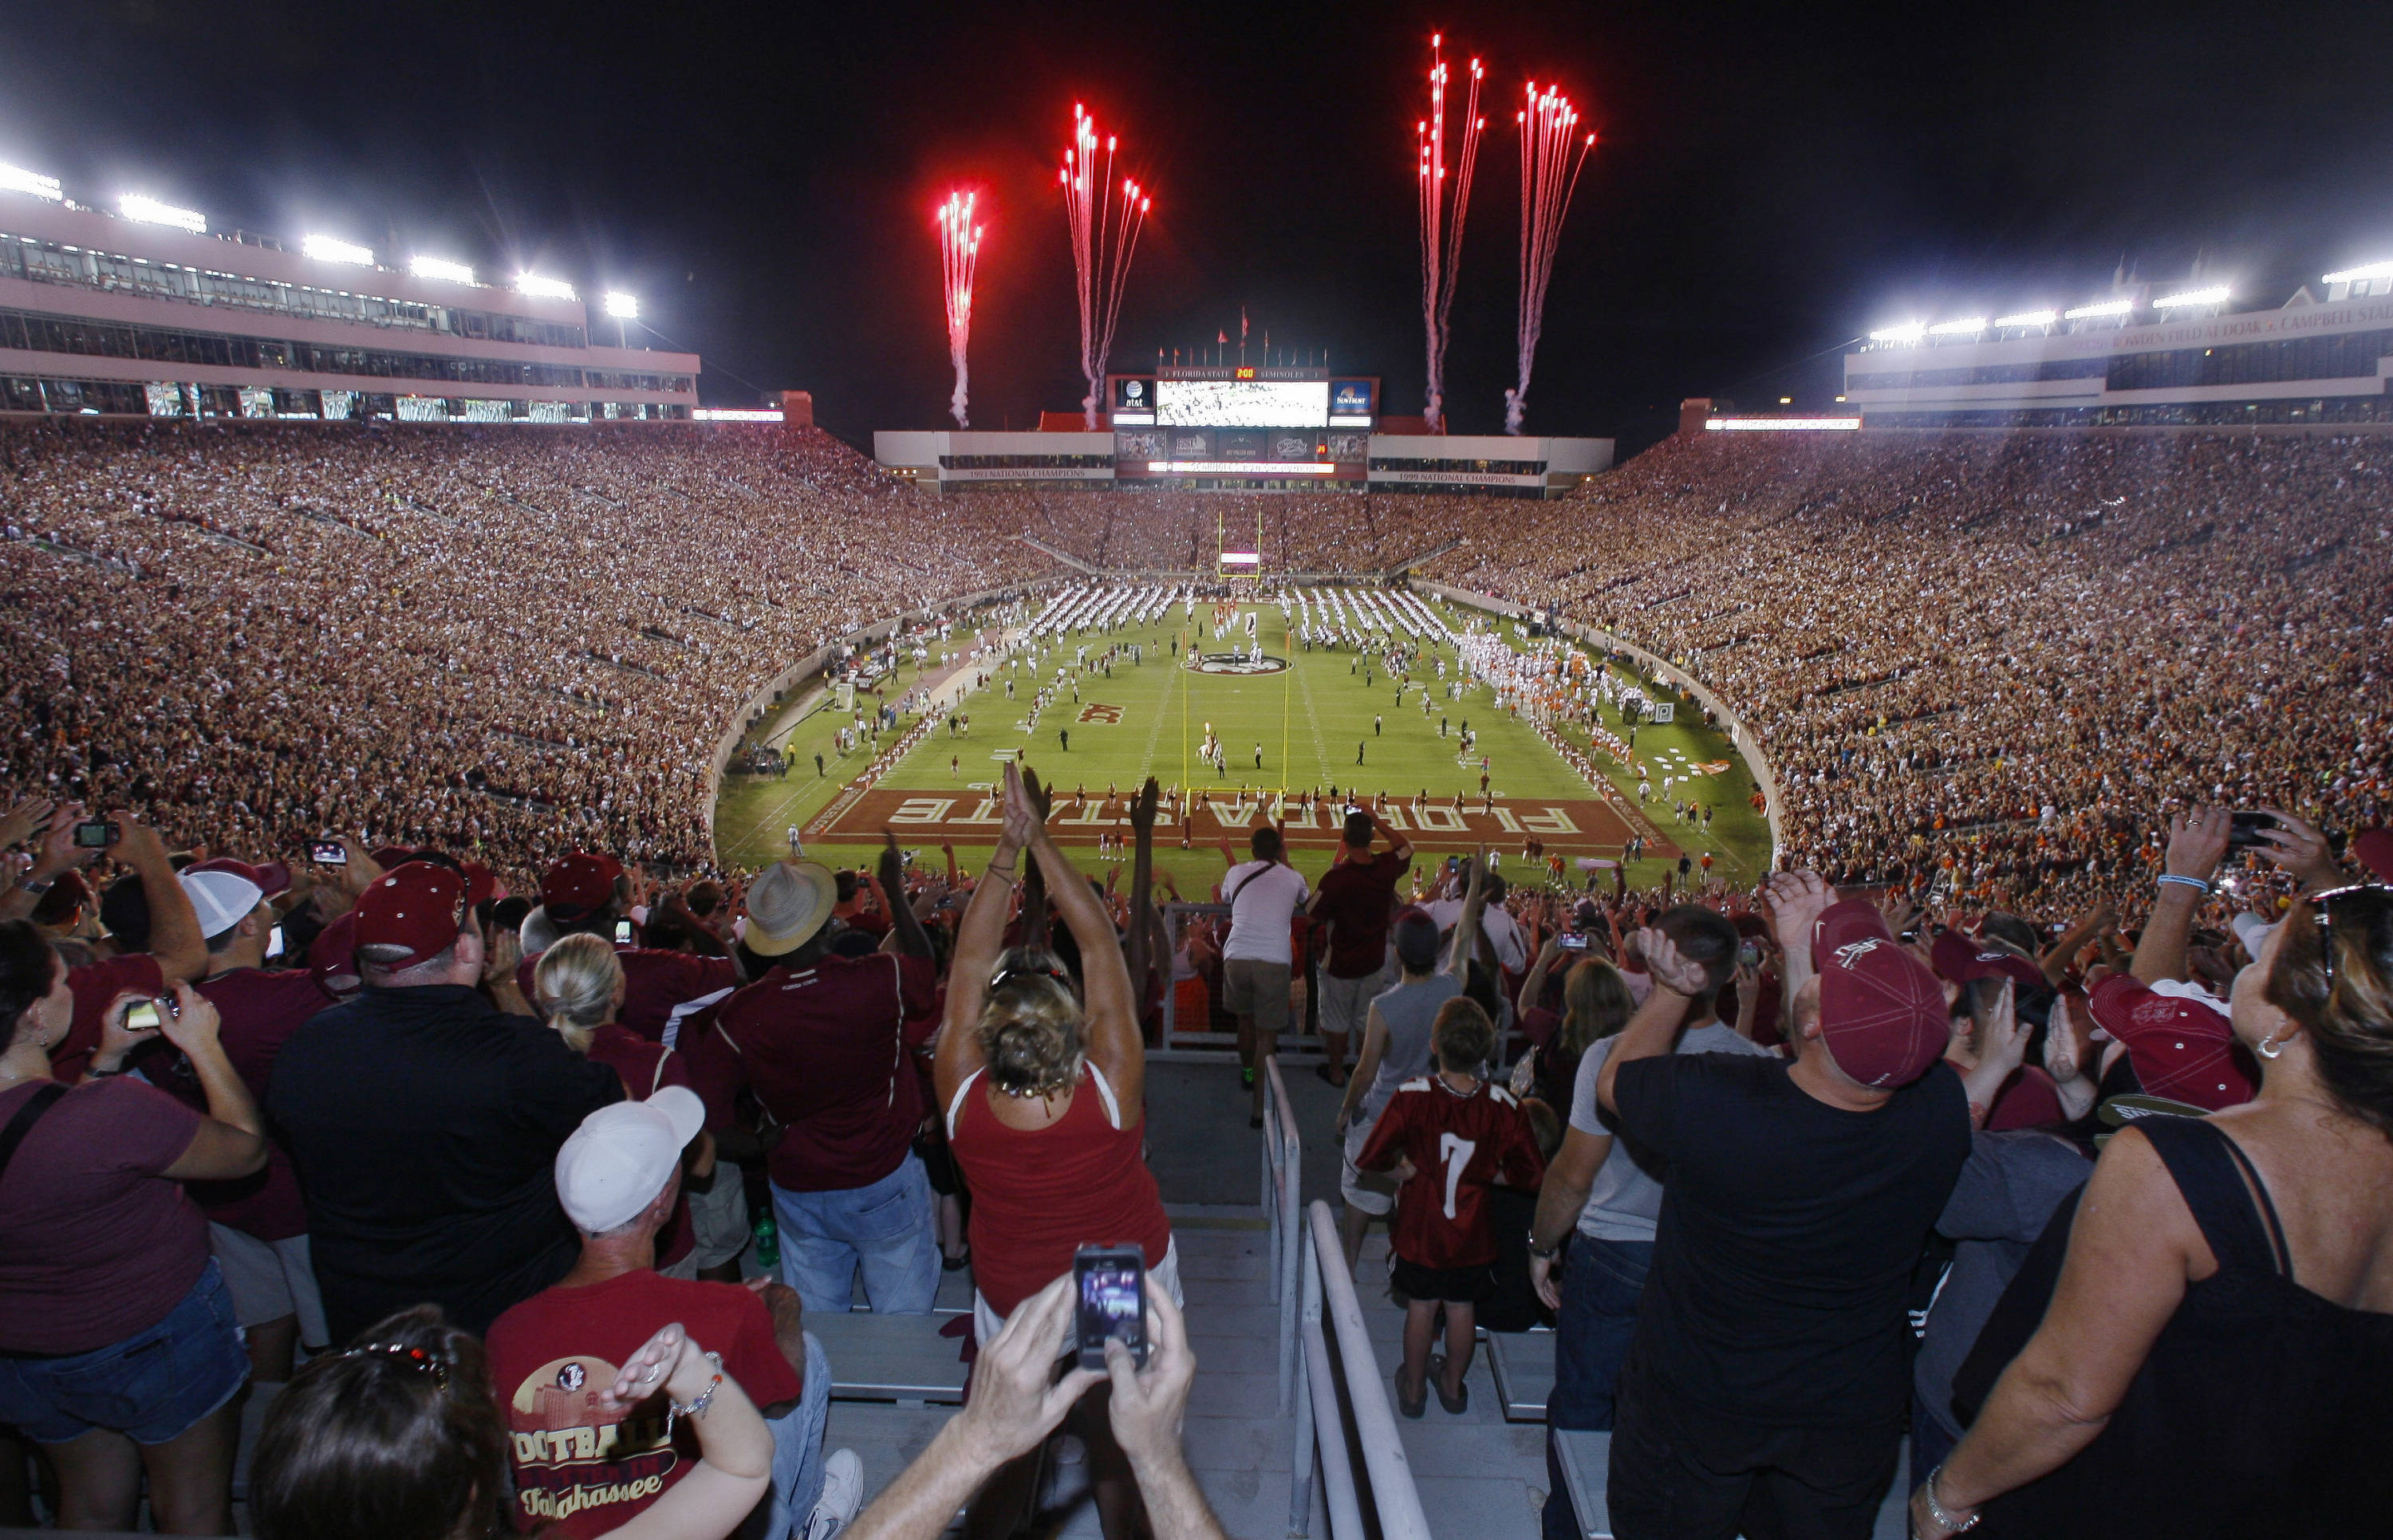 Fireworks go off as Florida State enters Doak Campbell Stadium. (AP Photo/Phil Sears)